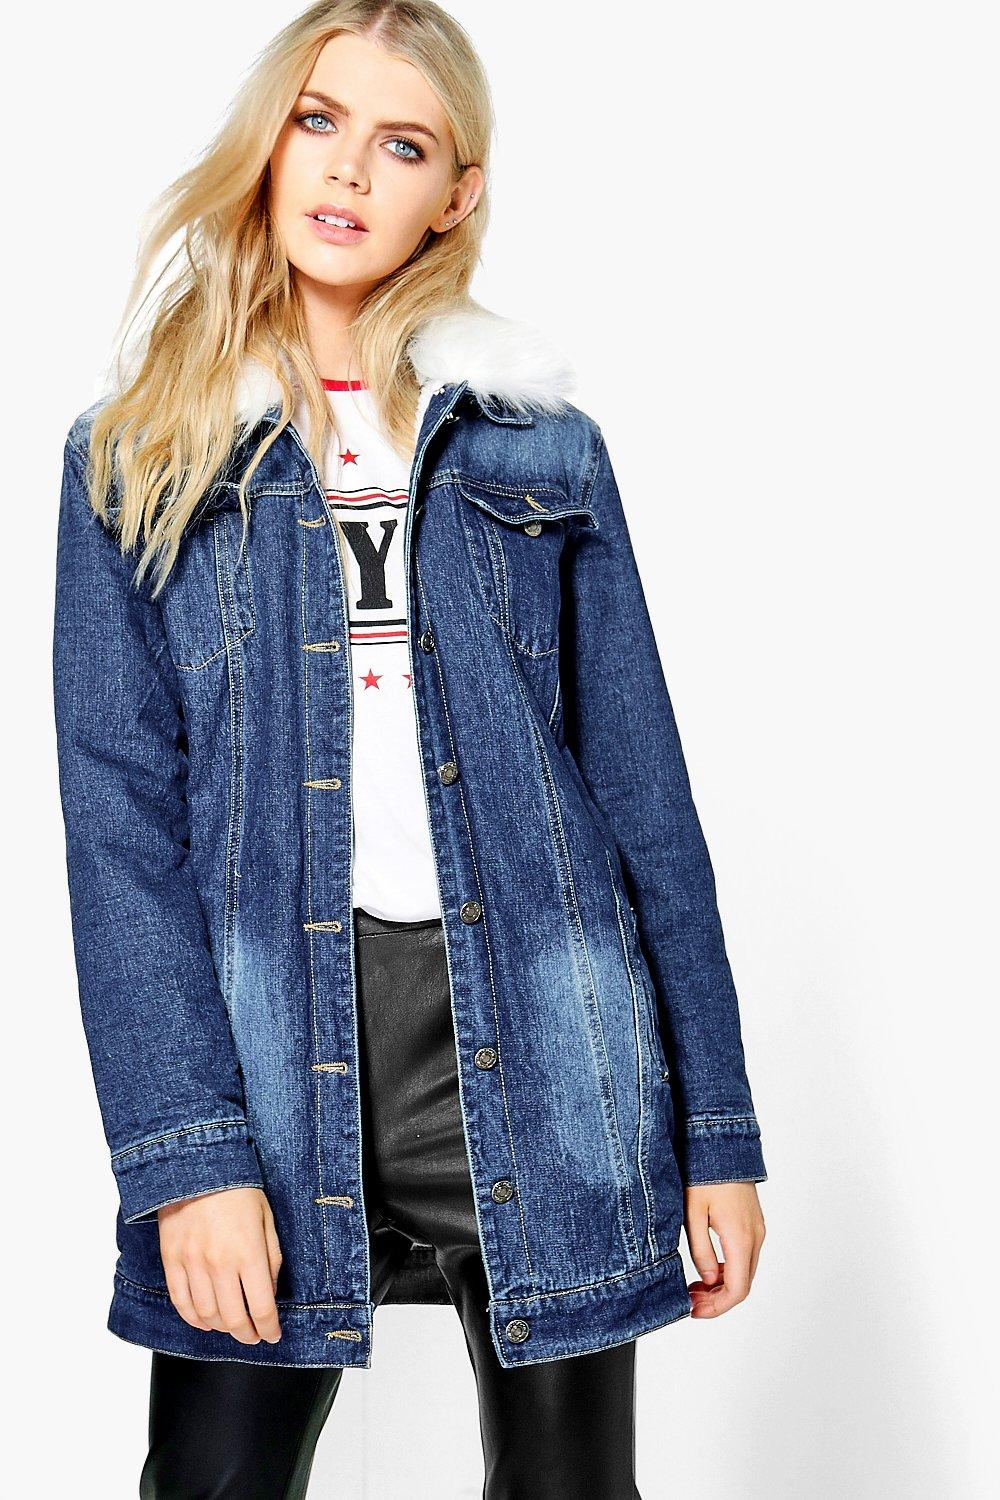 We're thinking a denim jacket for pretty much whenever, a bomber for ensembles with an edge, maybe even a cape when you want to dip your toe into something bold and trendy. Oh, and don't let anyone tell you can't pop that collar.